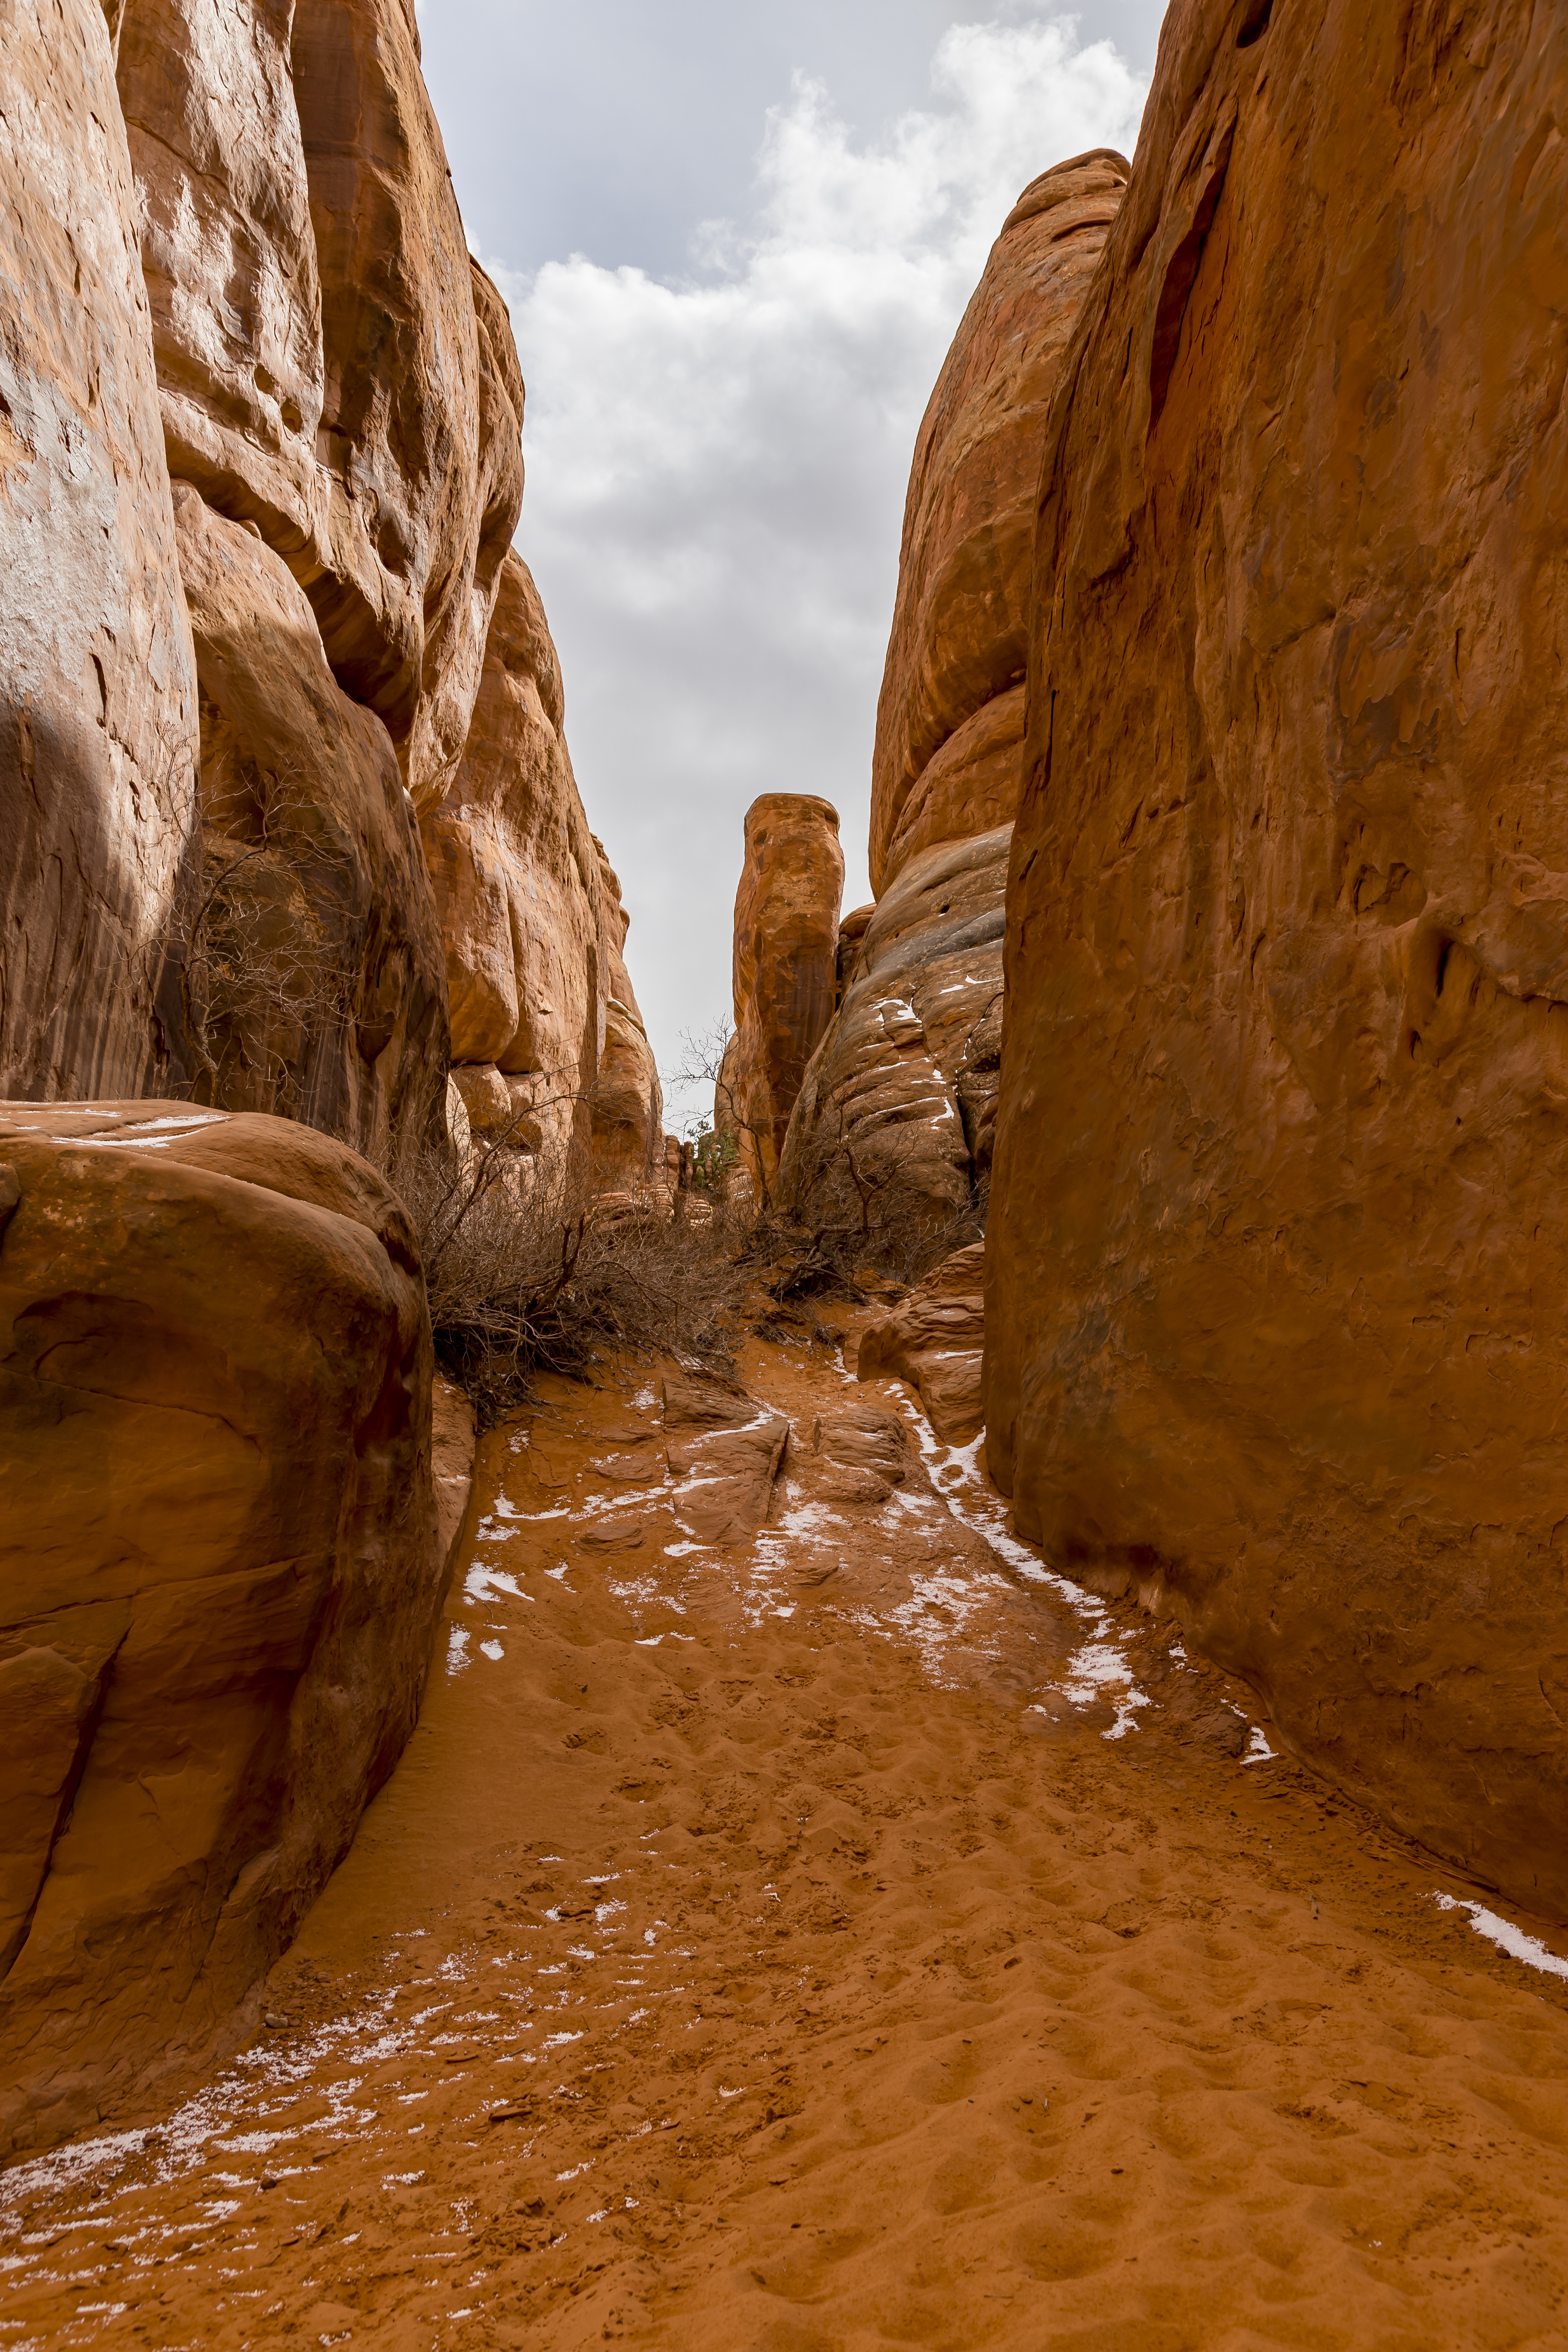 Sandstone Arch- Canyon walls